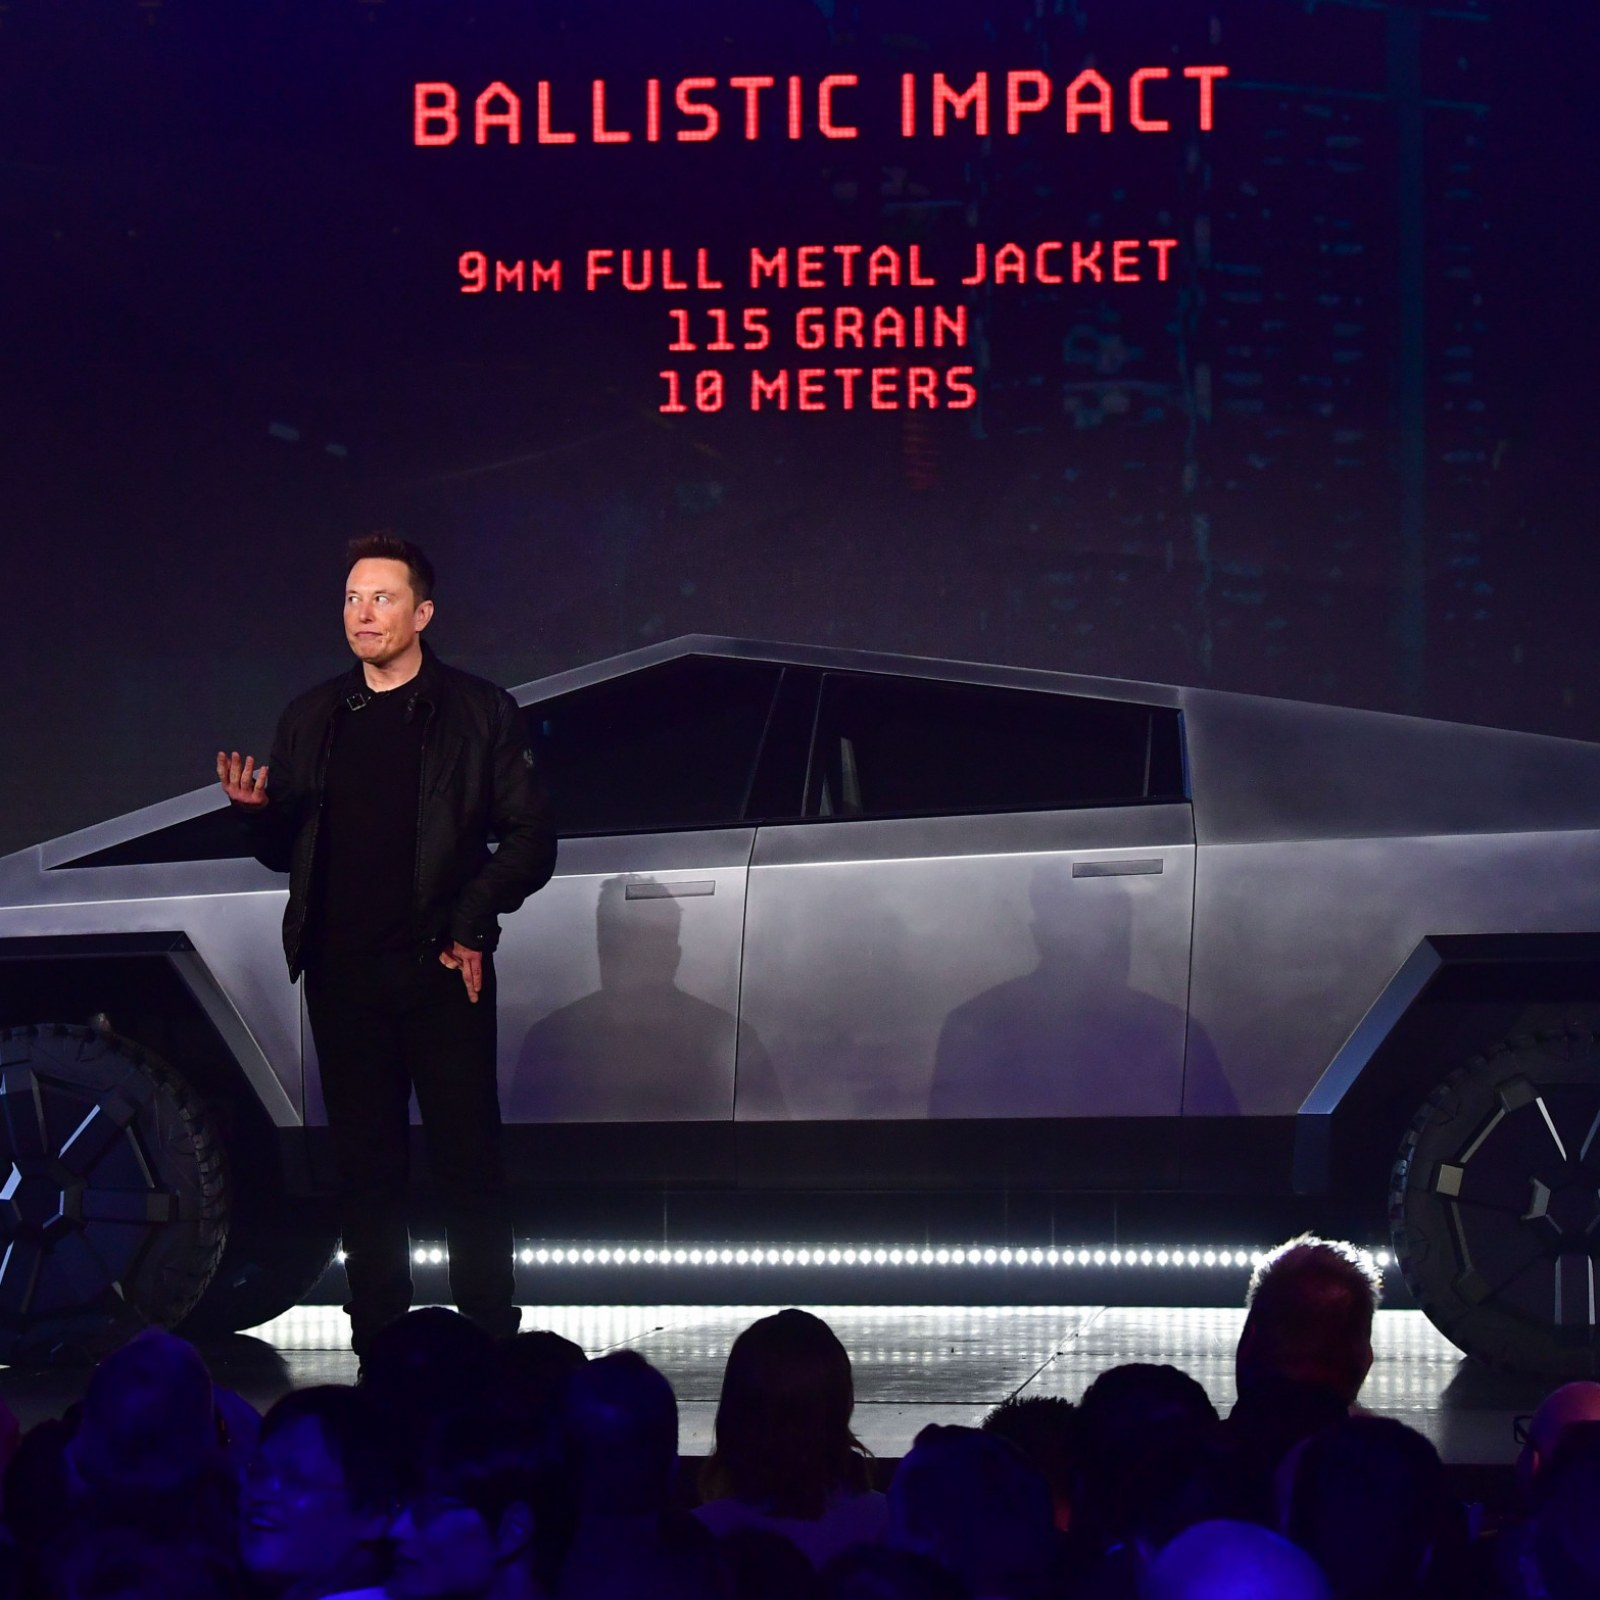 Elon Musk Says The Tesla Cybertruck Will Be Able To Float For A While